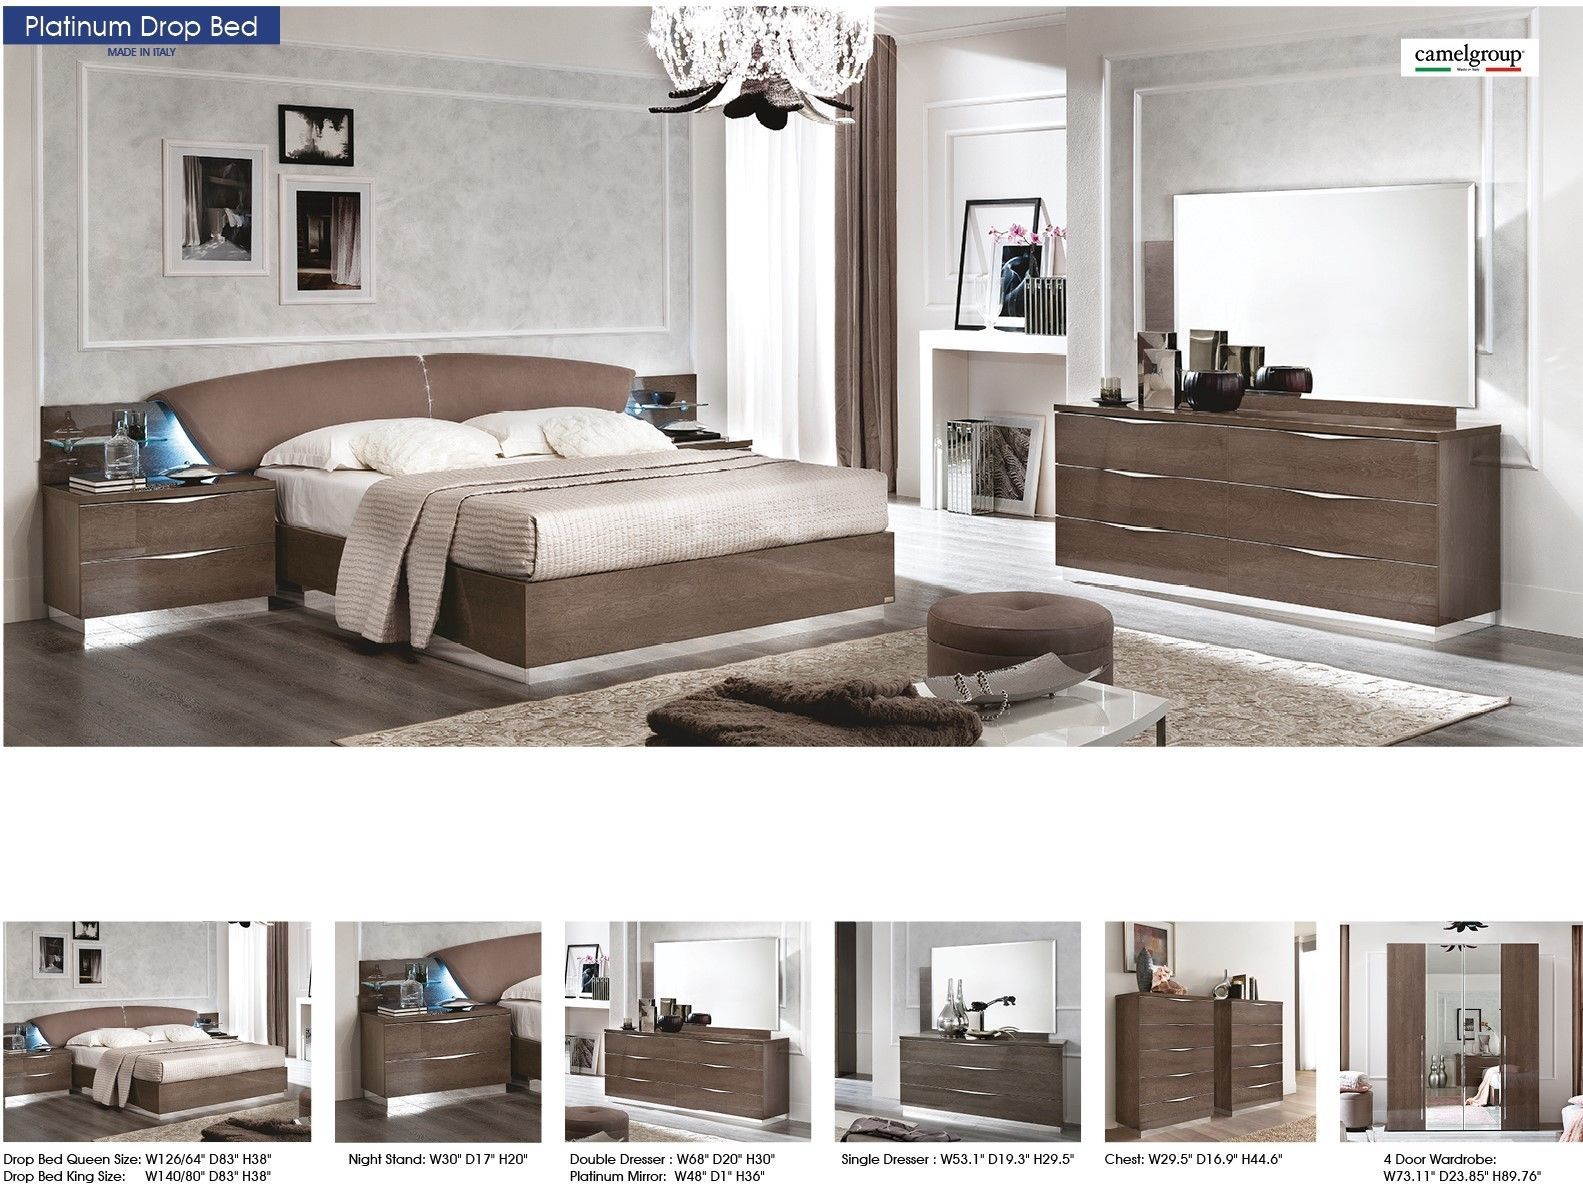 ESF Platinum Drop King Size Bedroom Set Chic Contemporary Modern 2 Night Stands